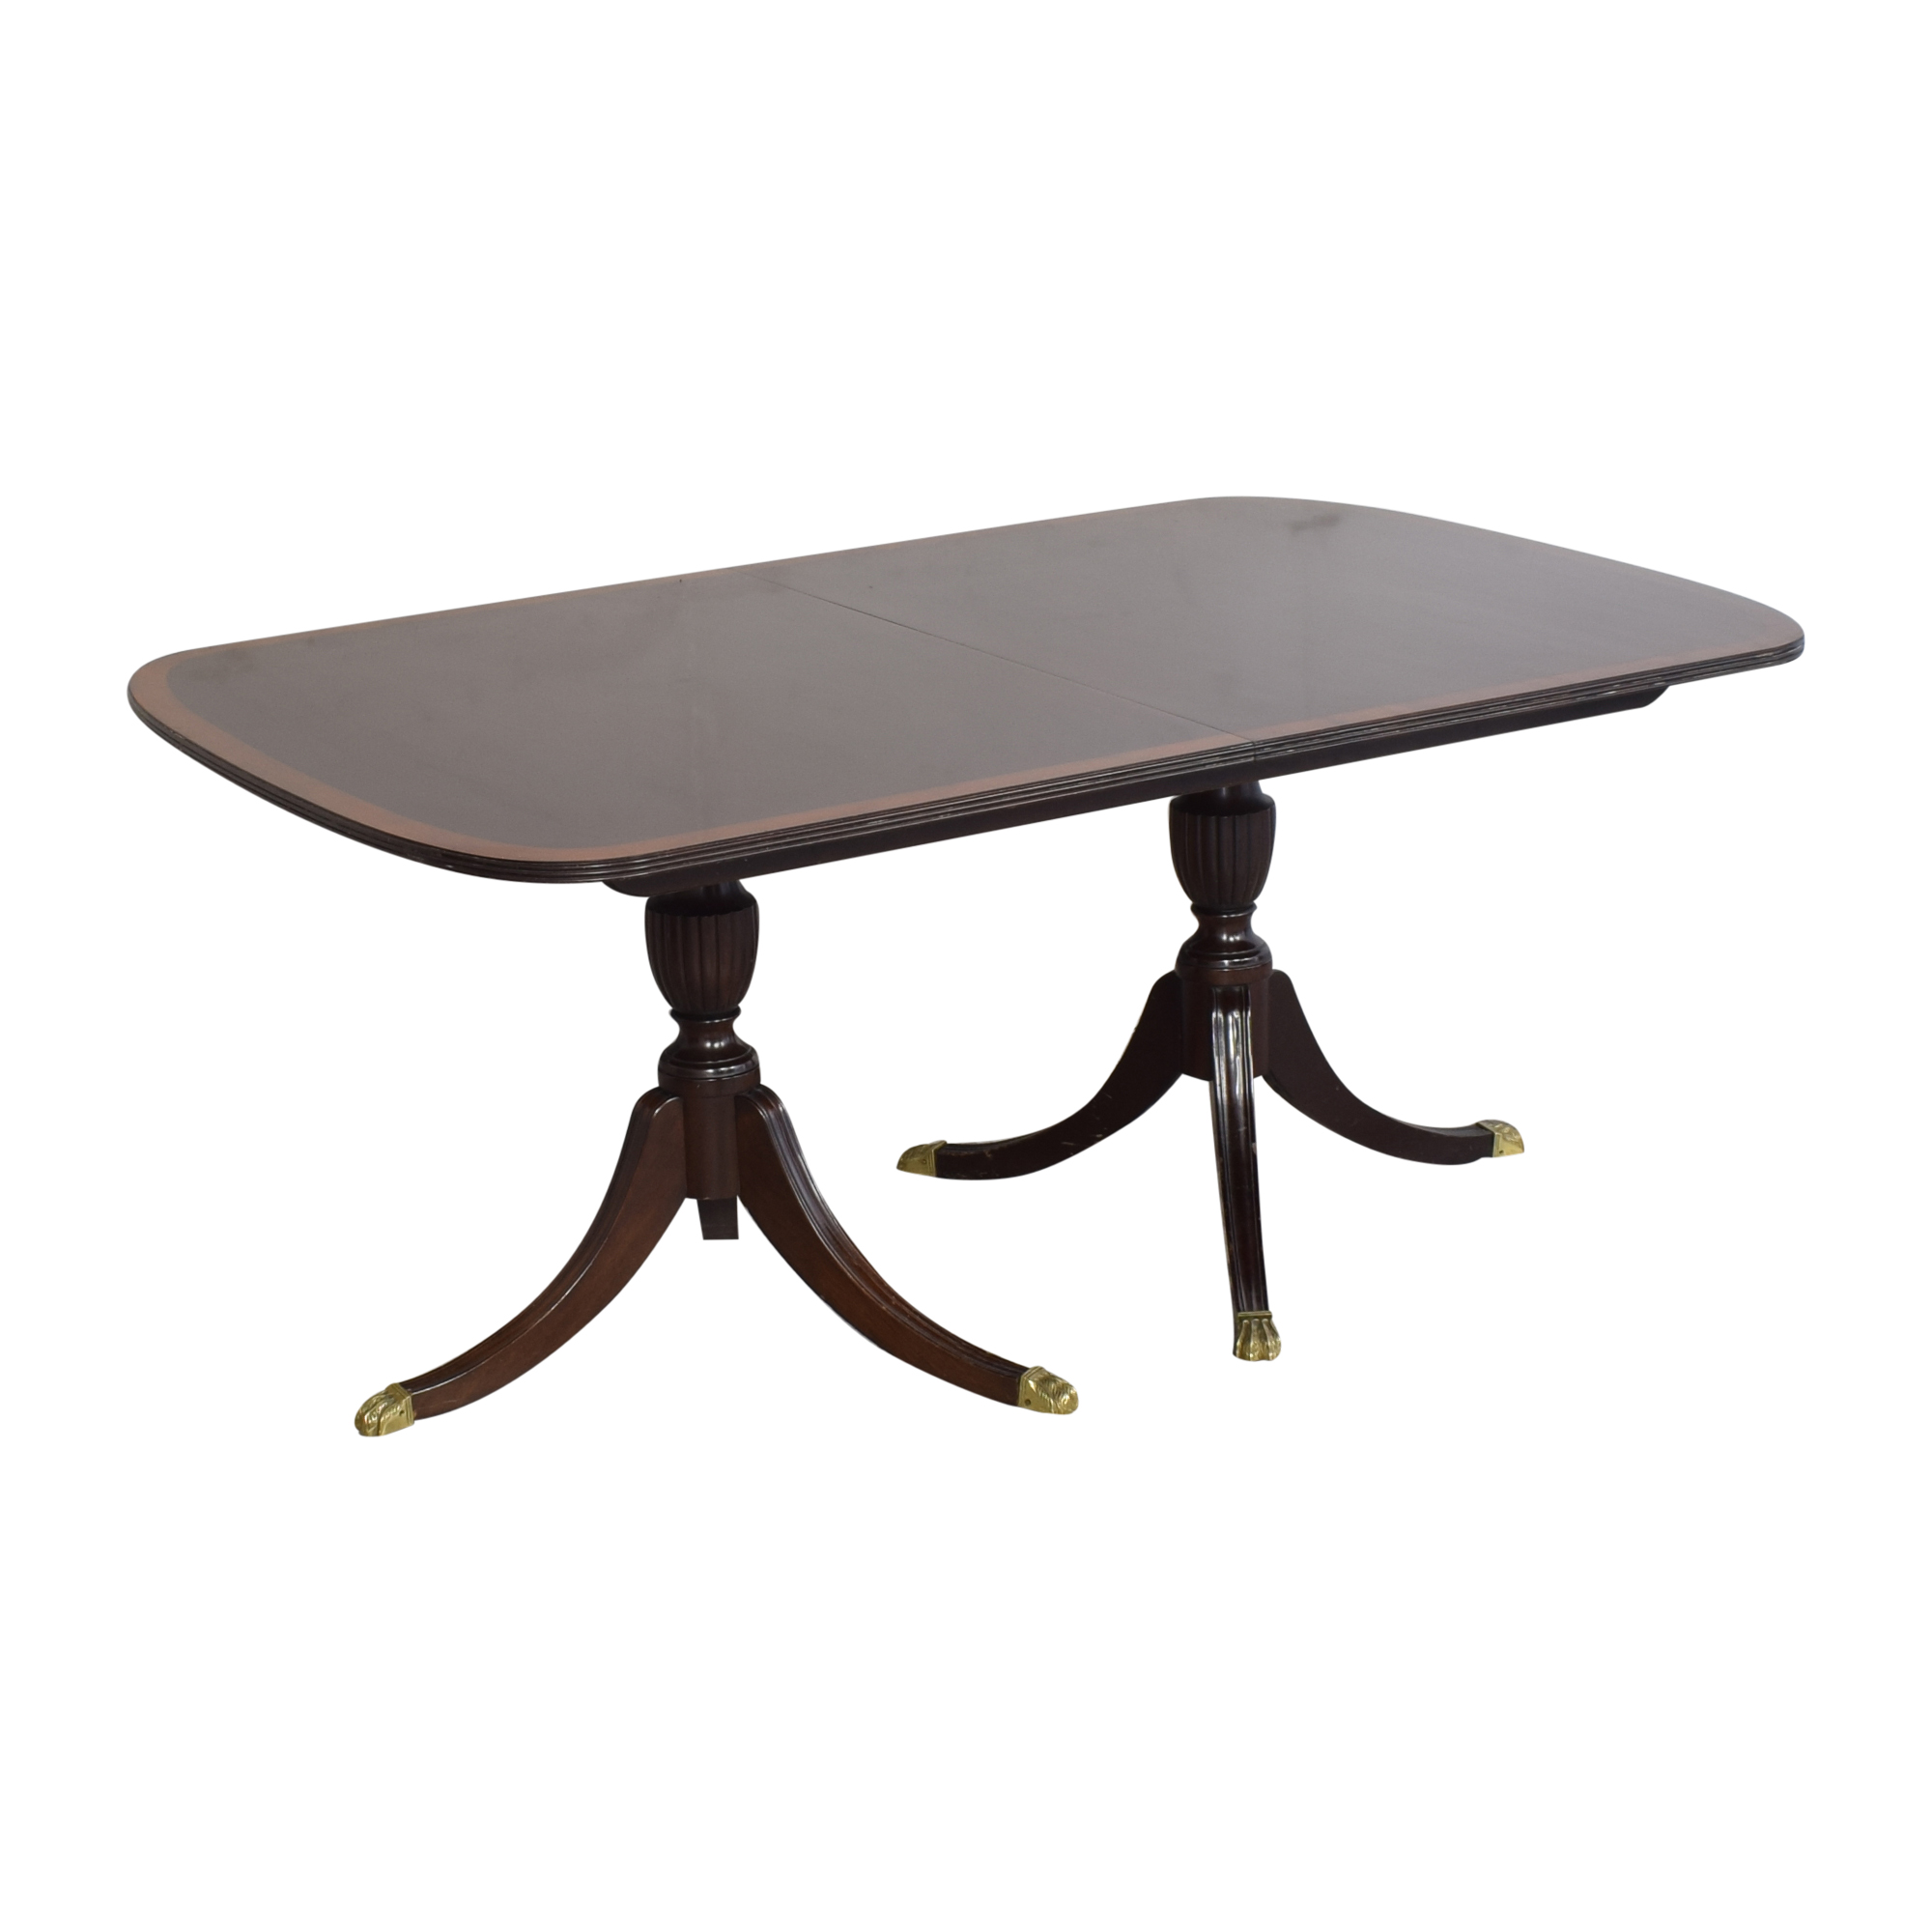 buy Stickley Furniture Stickley Furniture Extendable Double Pedestal Dining Table online